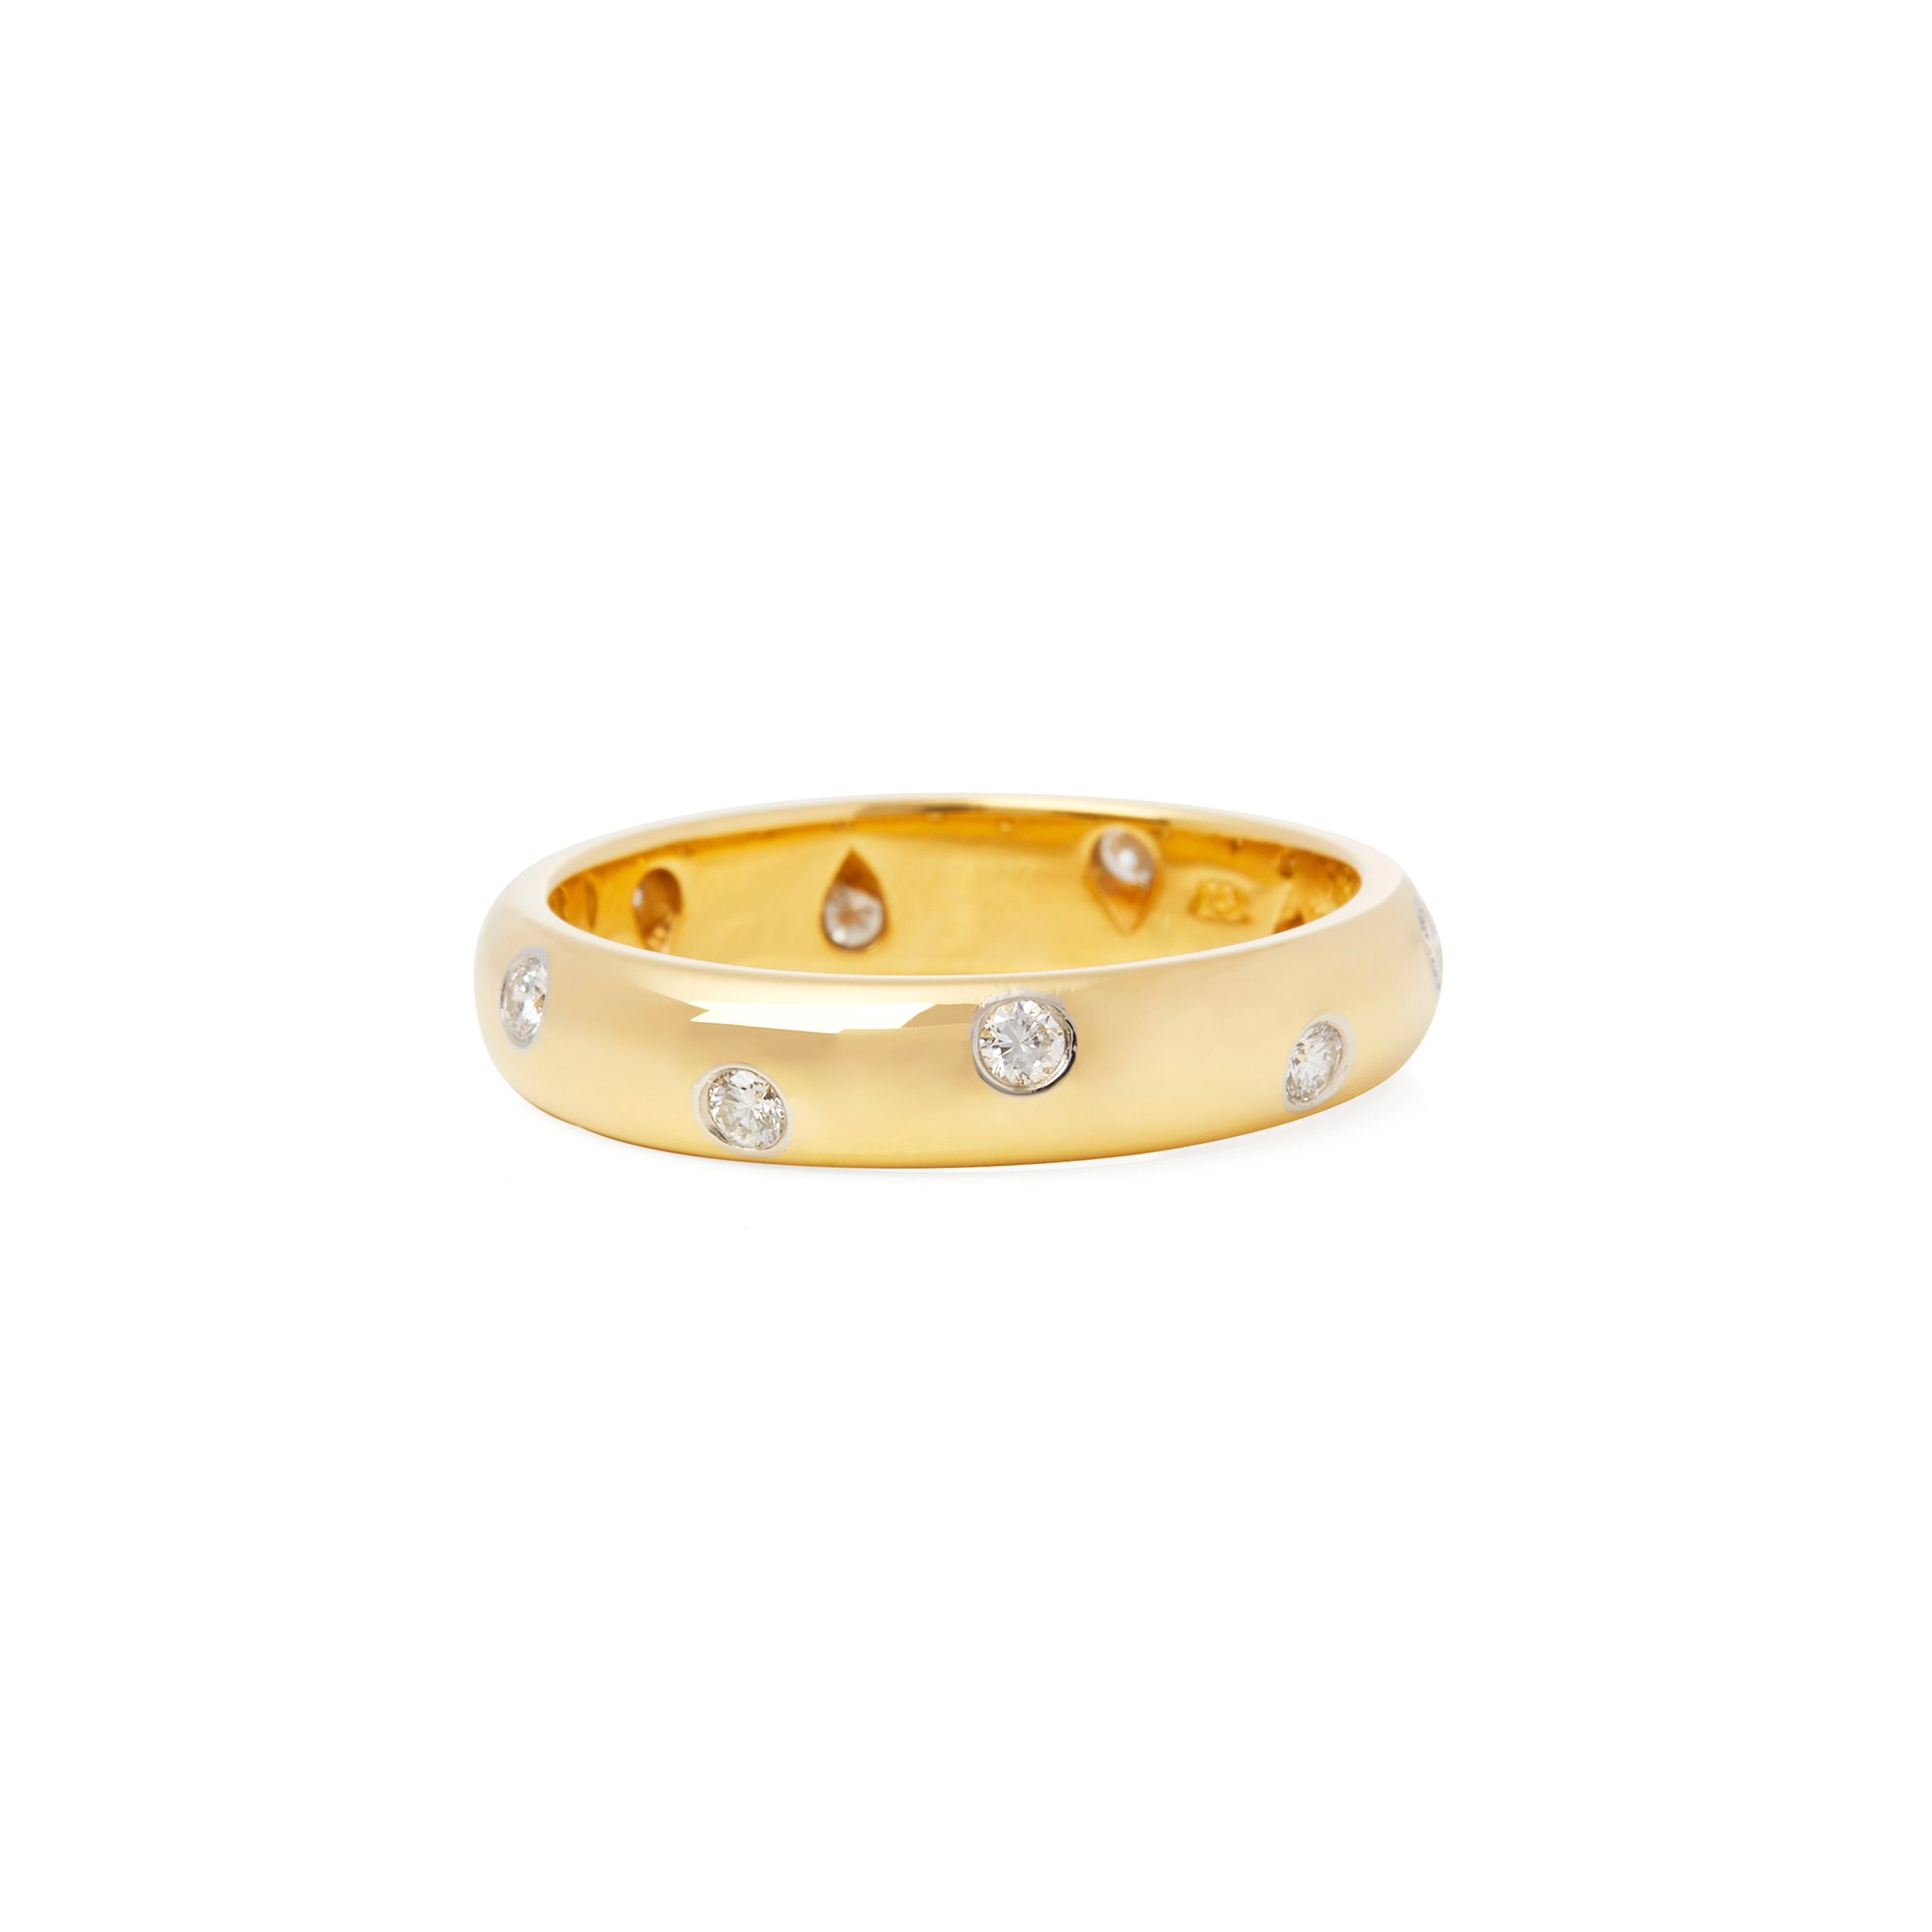 Tiffany & Co. 18k Yellow Gold Etoile Ring